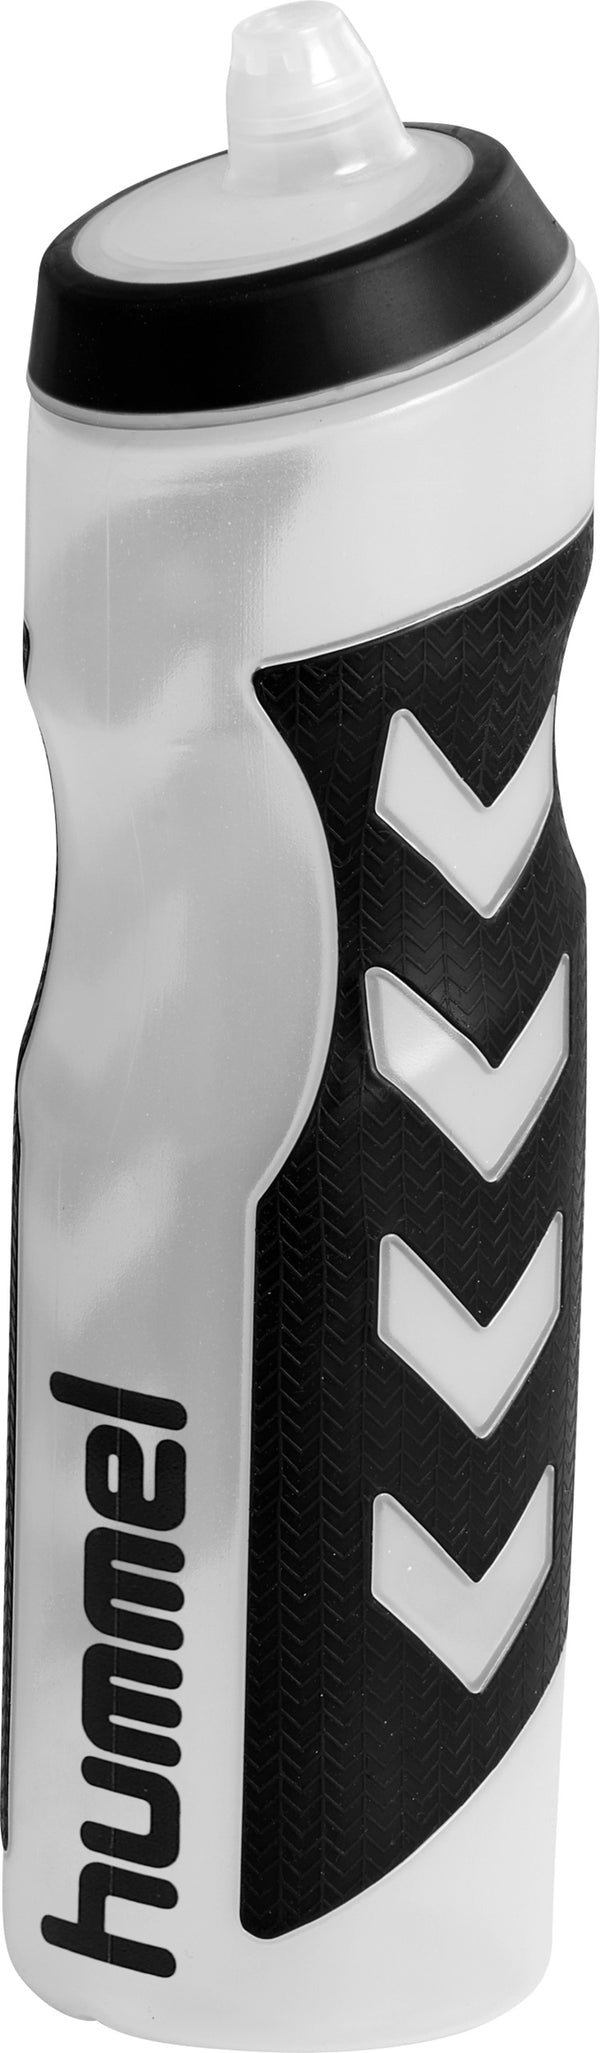 Hummel Water Bottle-Equipment-Soccer Source